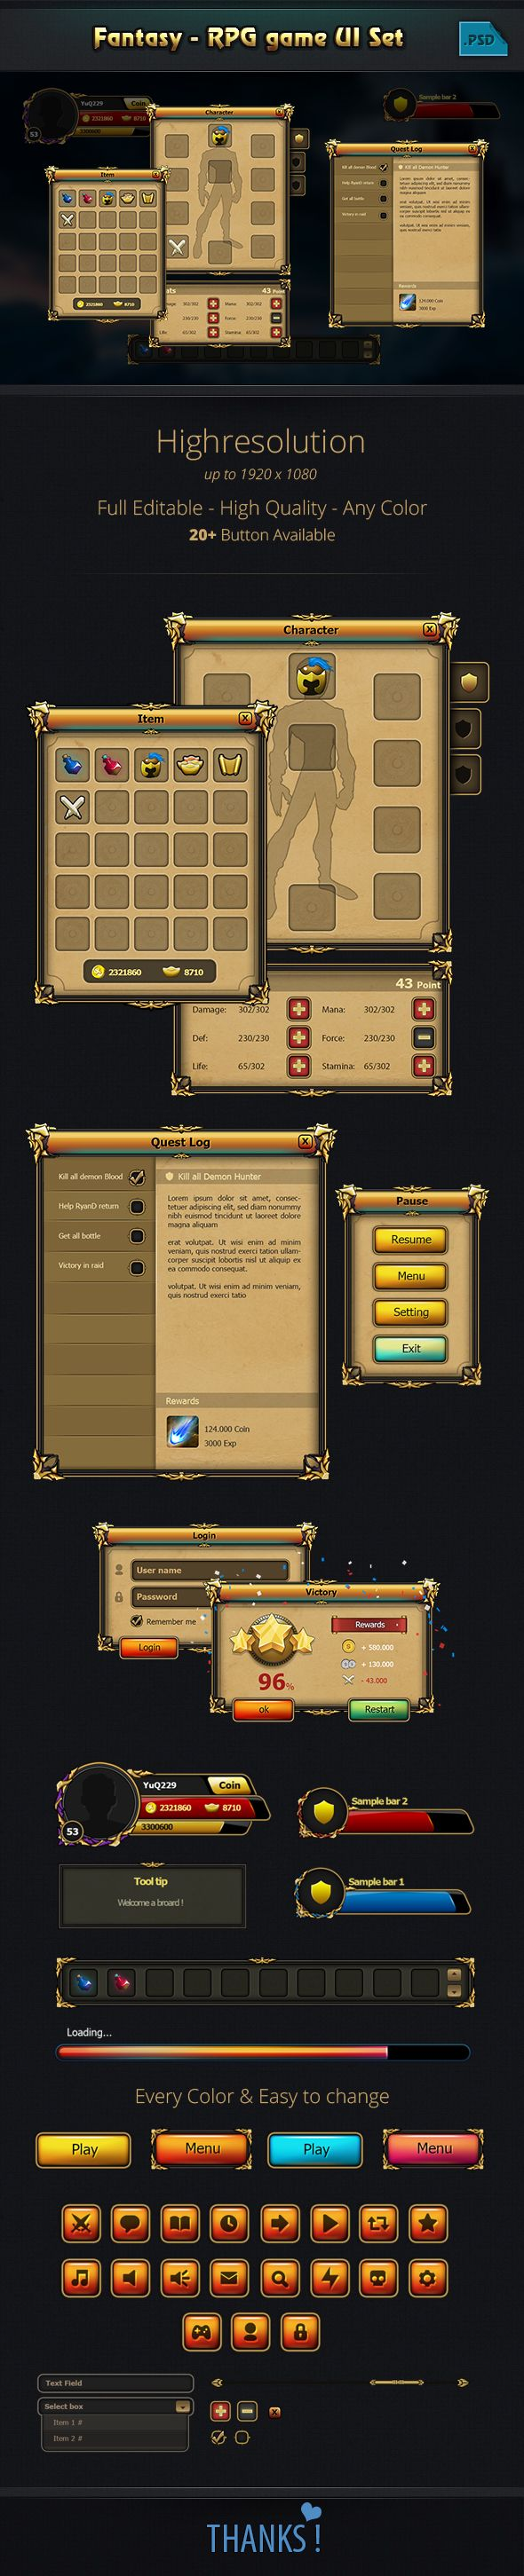 Fantasy - RPG Game GUi pack on Behance